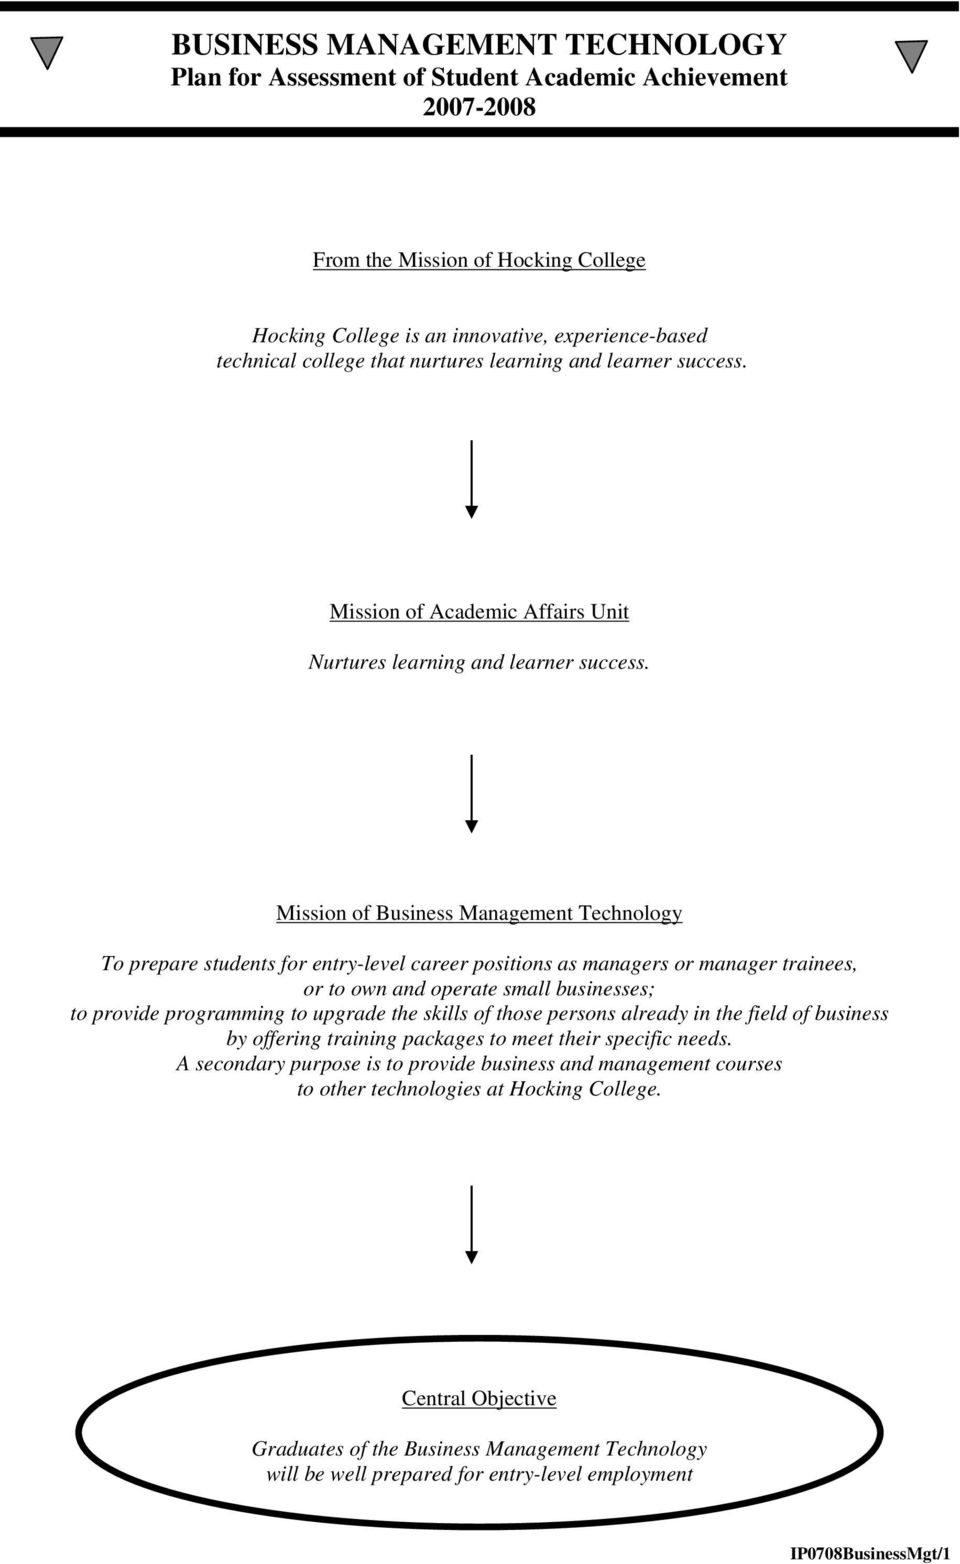 Mission of Business Management Technology To prepare students for entry-level career positions as managers or manager trainees, or to own and operate small businesses; to provide programming to